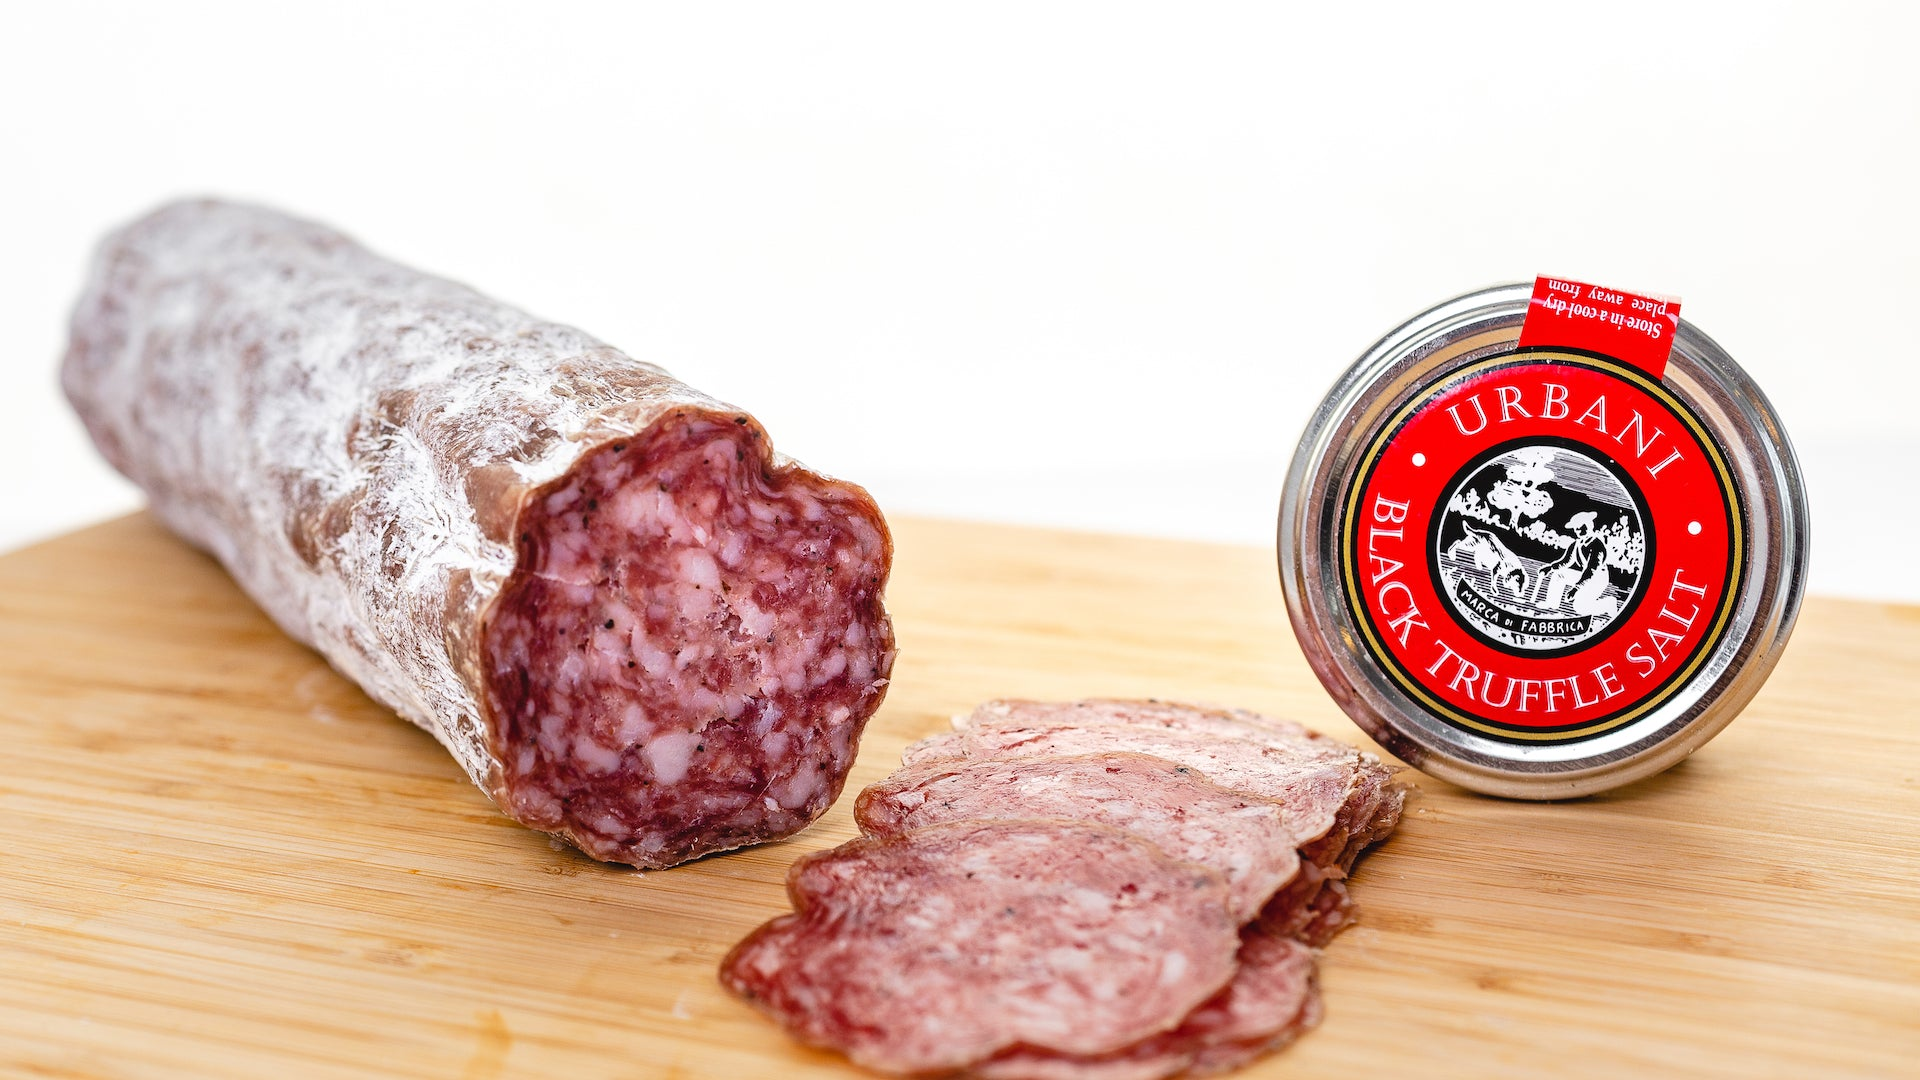 Black truffle salami on a cutting board with the cut end facing the camera and several slices of salami in the foreground.